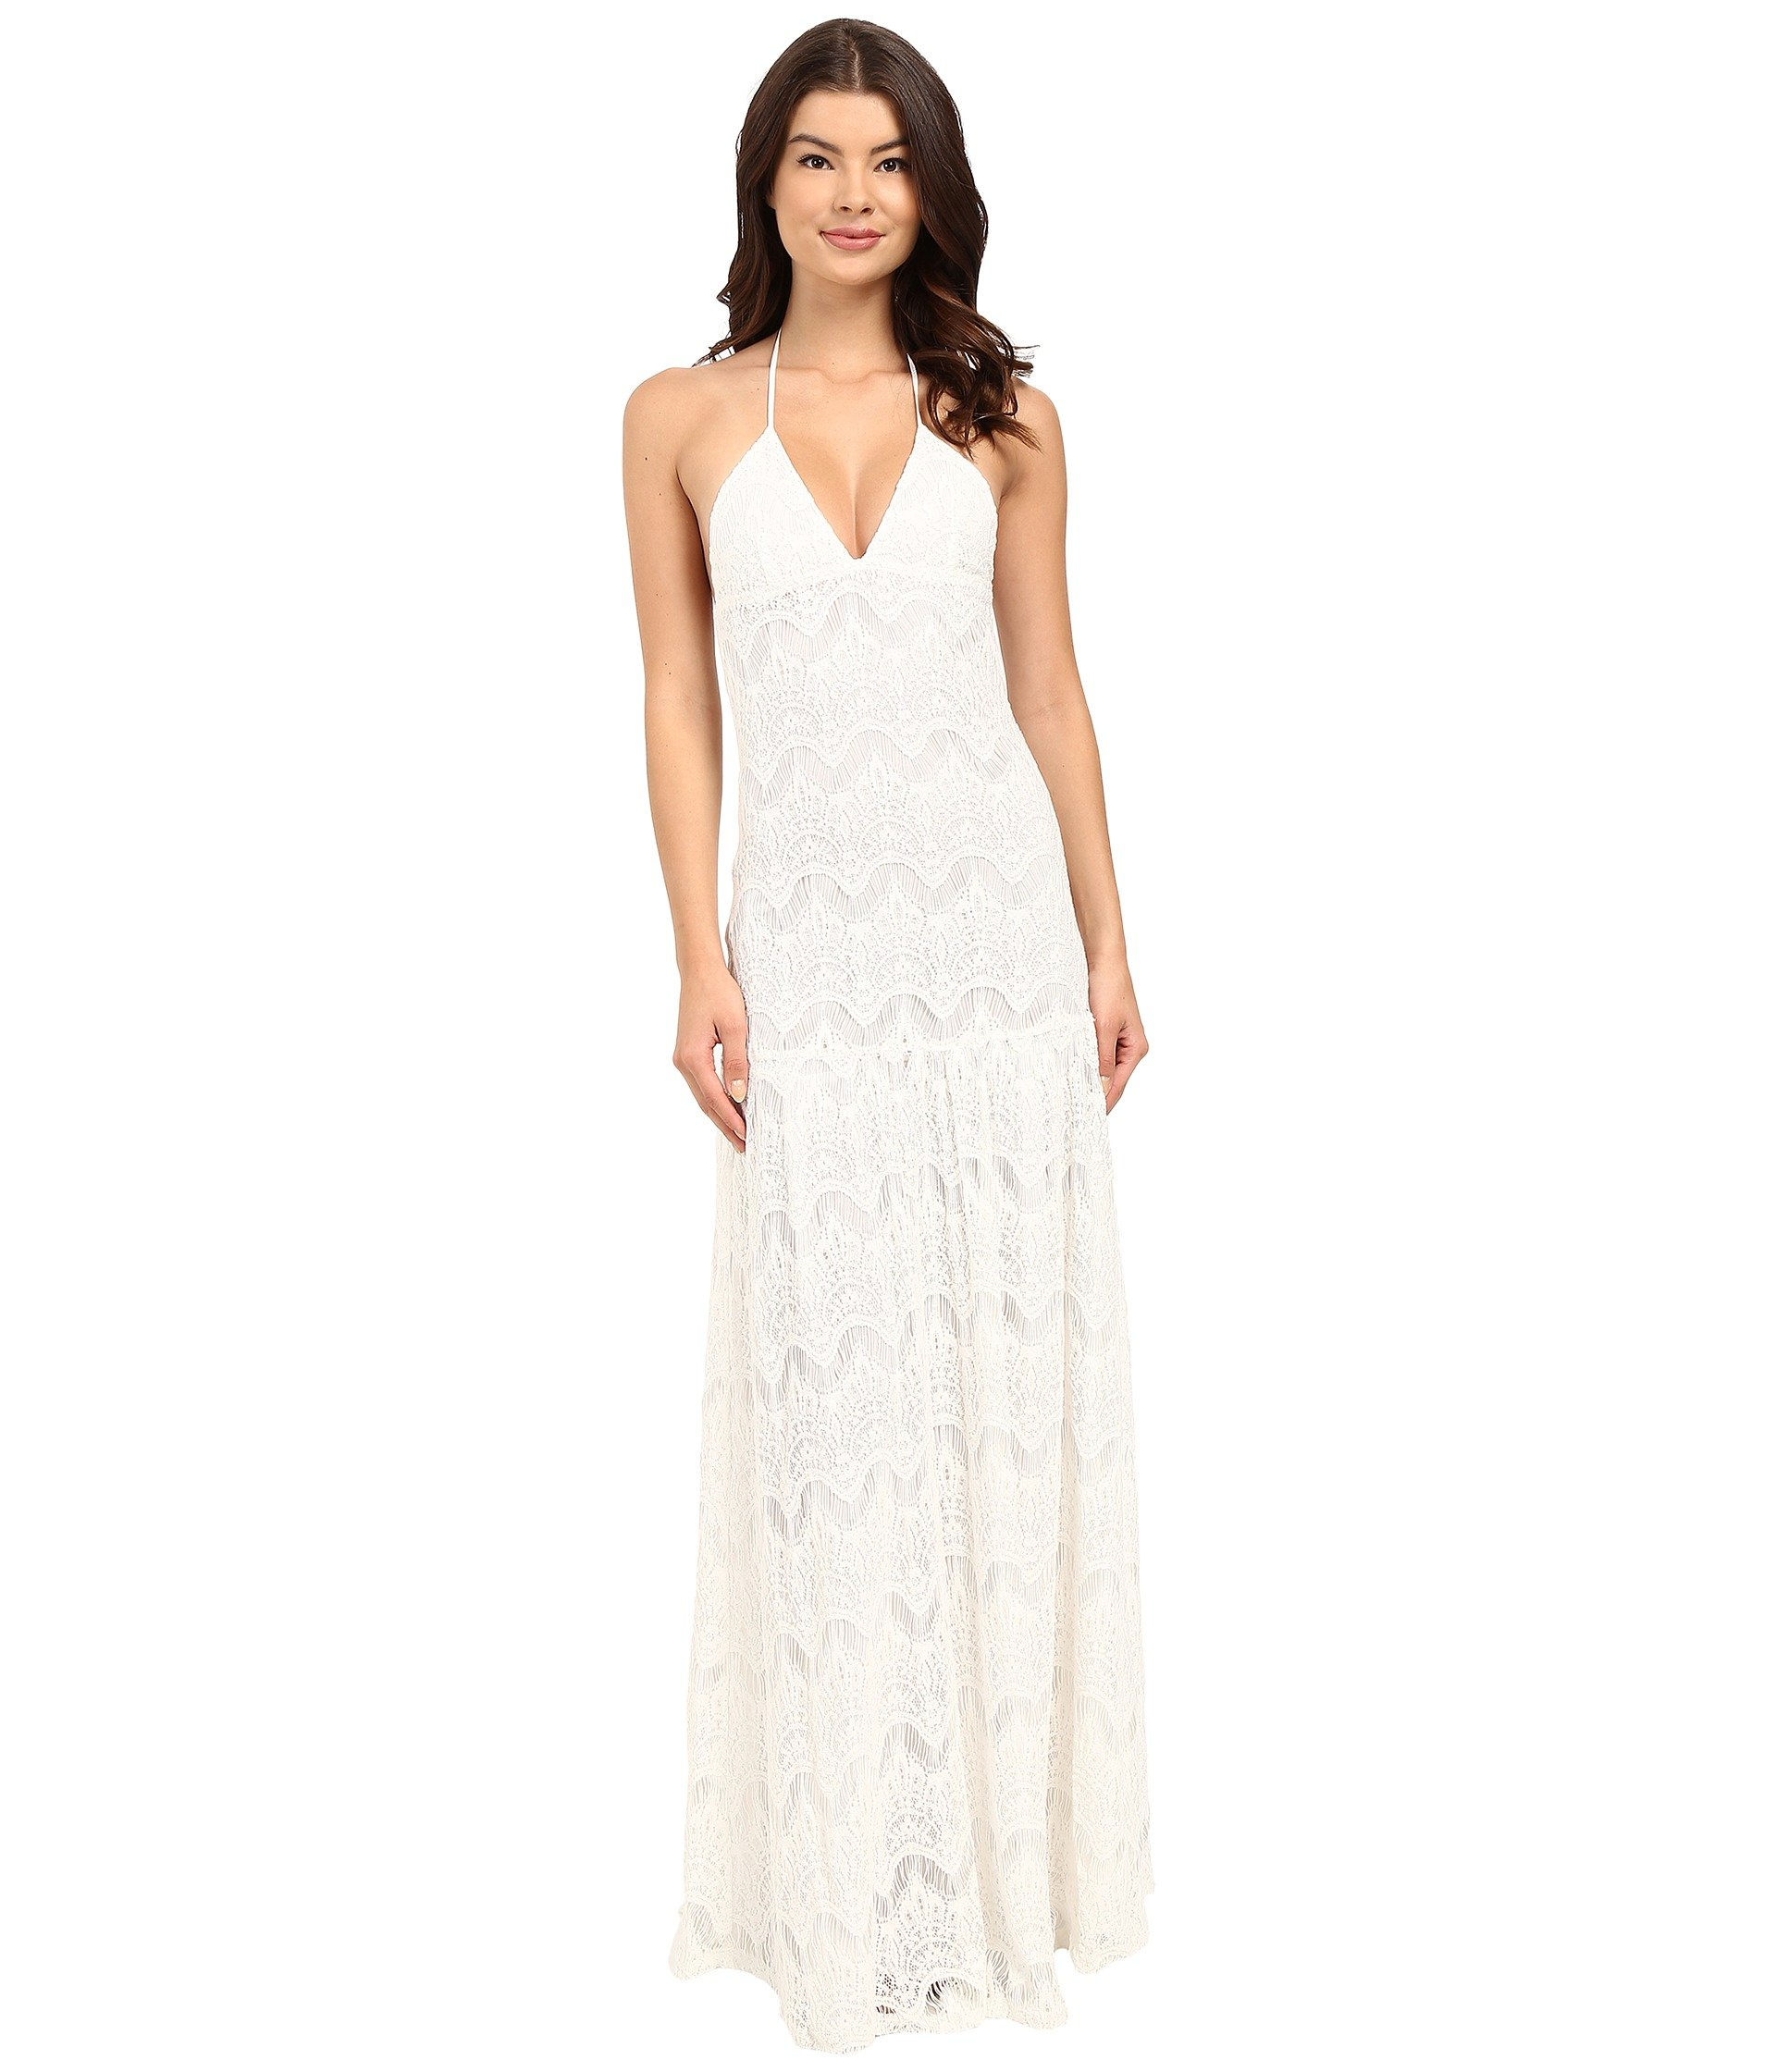 6 Shore Road by Pooja Women's Lace Someone Special Wedding Dress Cover-Up Moonlight White Large